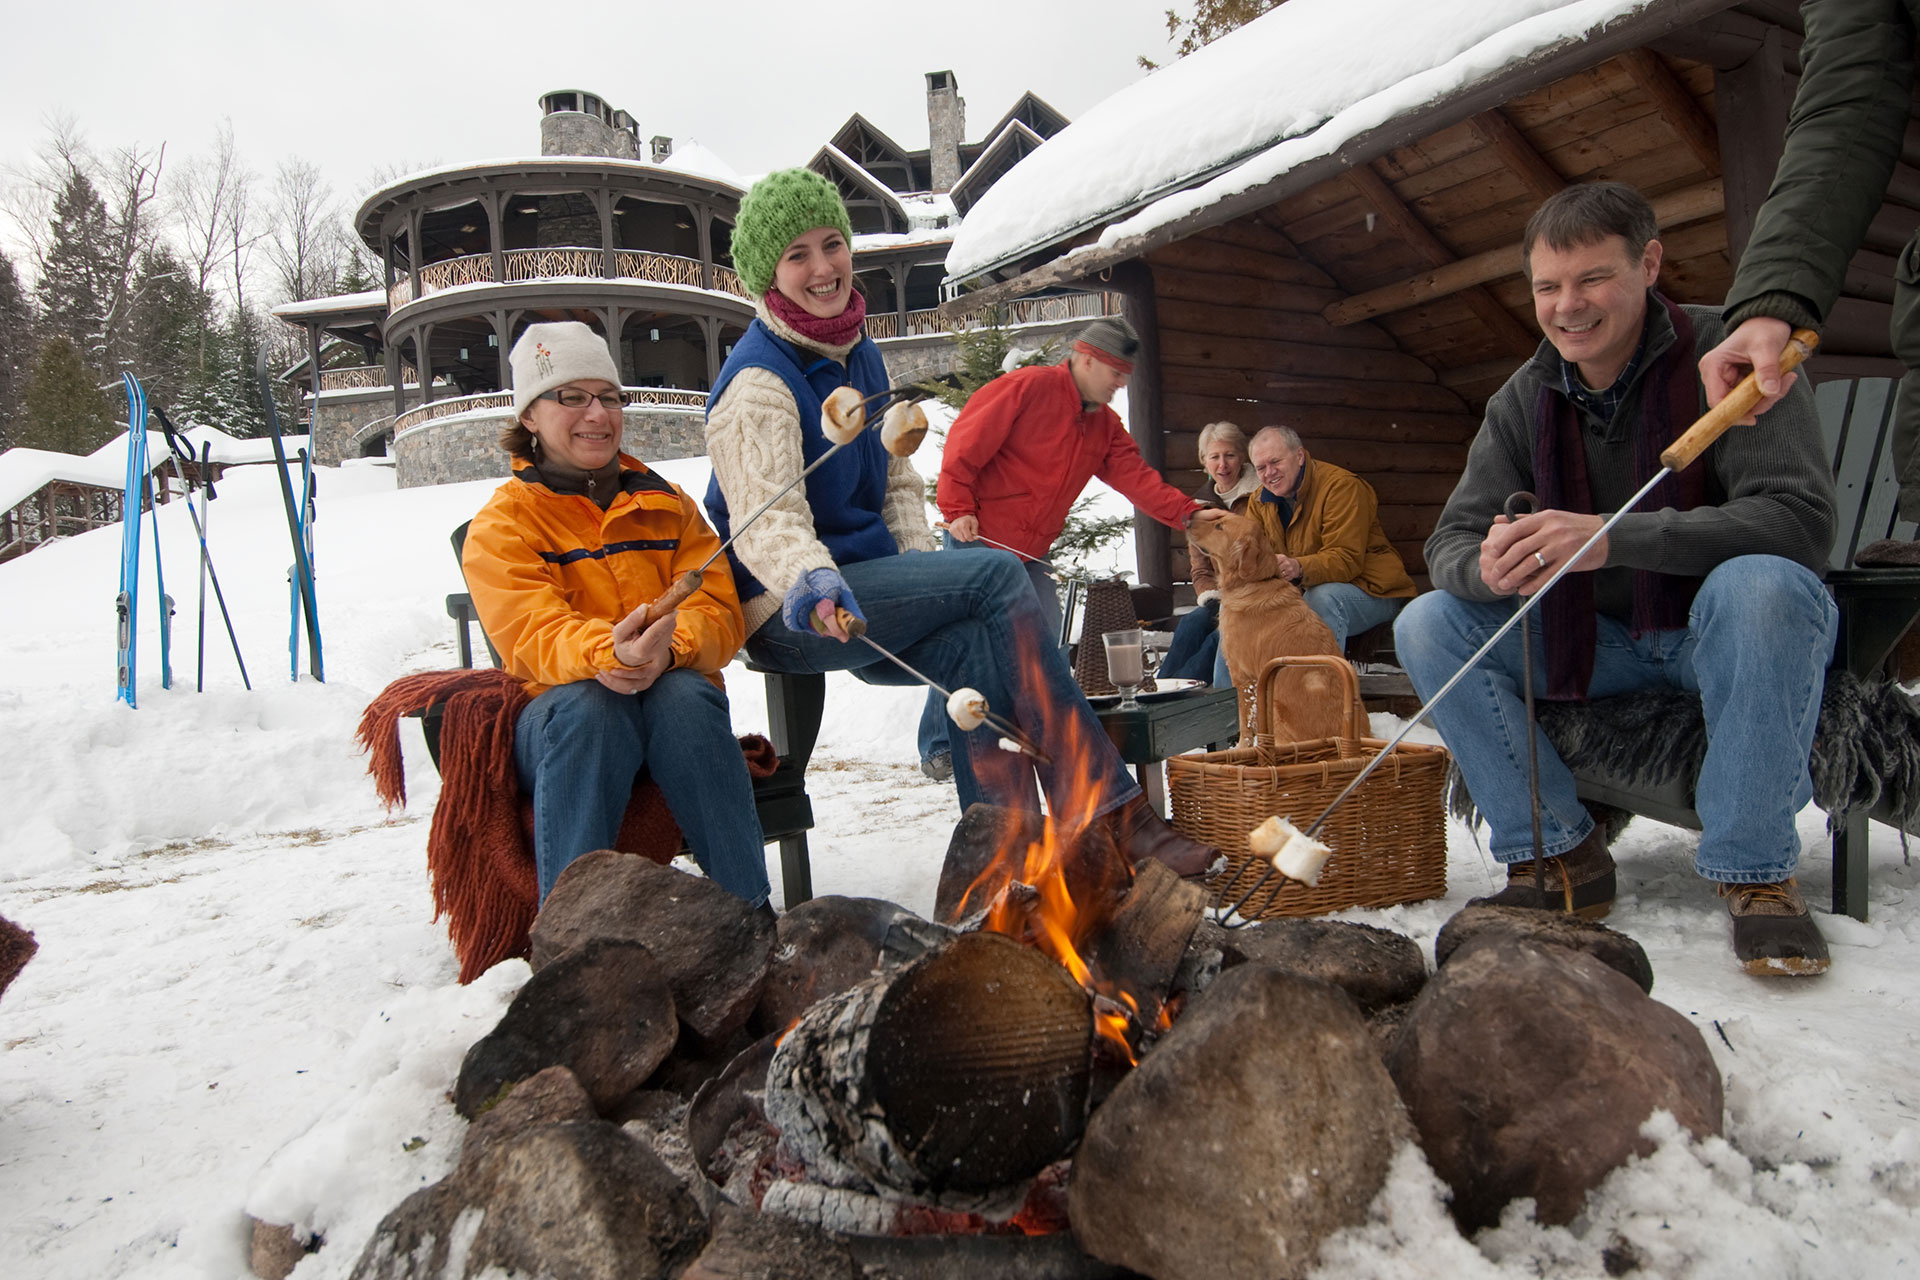 Bonfire at Lake Placid Lodge; Courtesy of Lake Placid Lodge